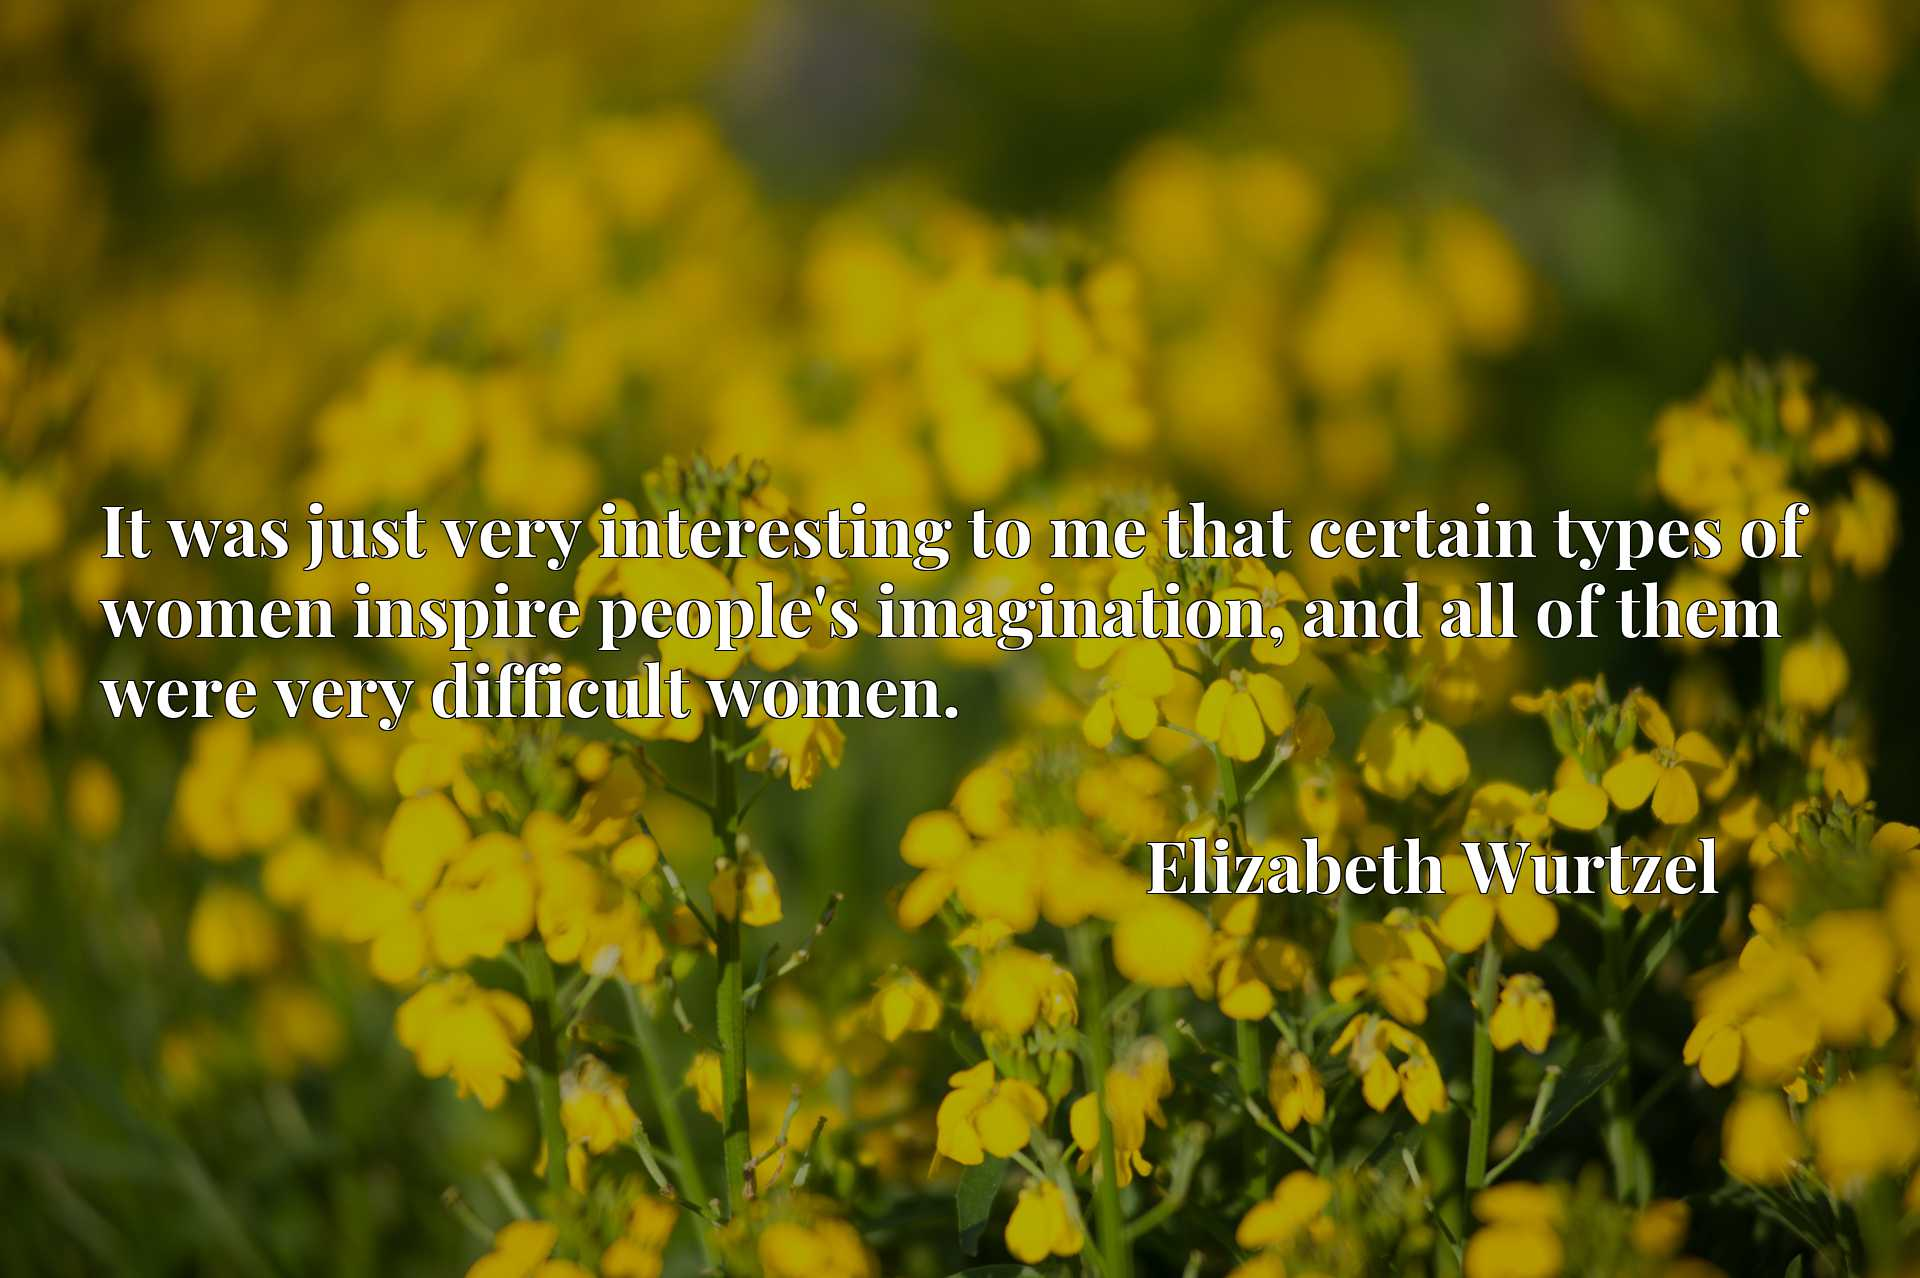 Quote Picture :It was just very interesting to me that certain types of women inspire people's imagination, and all of them were very difficult women.